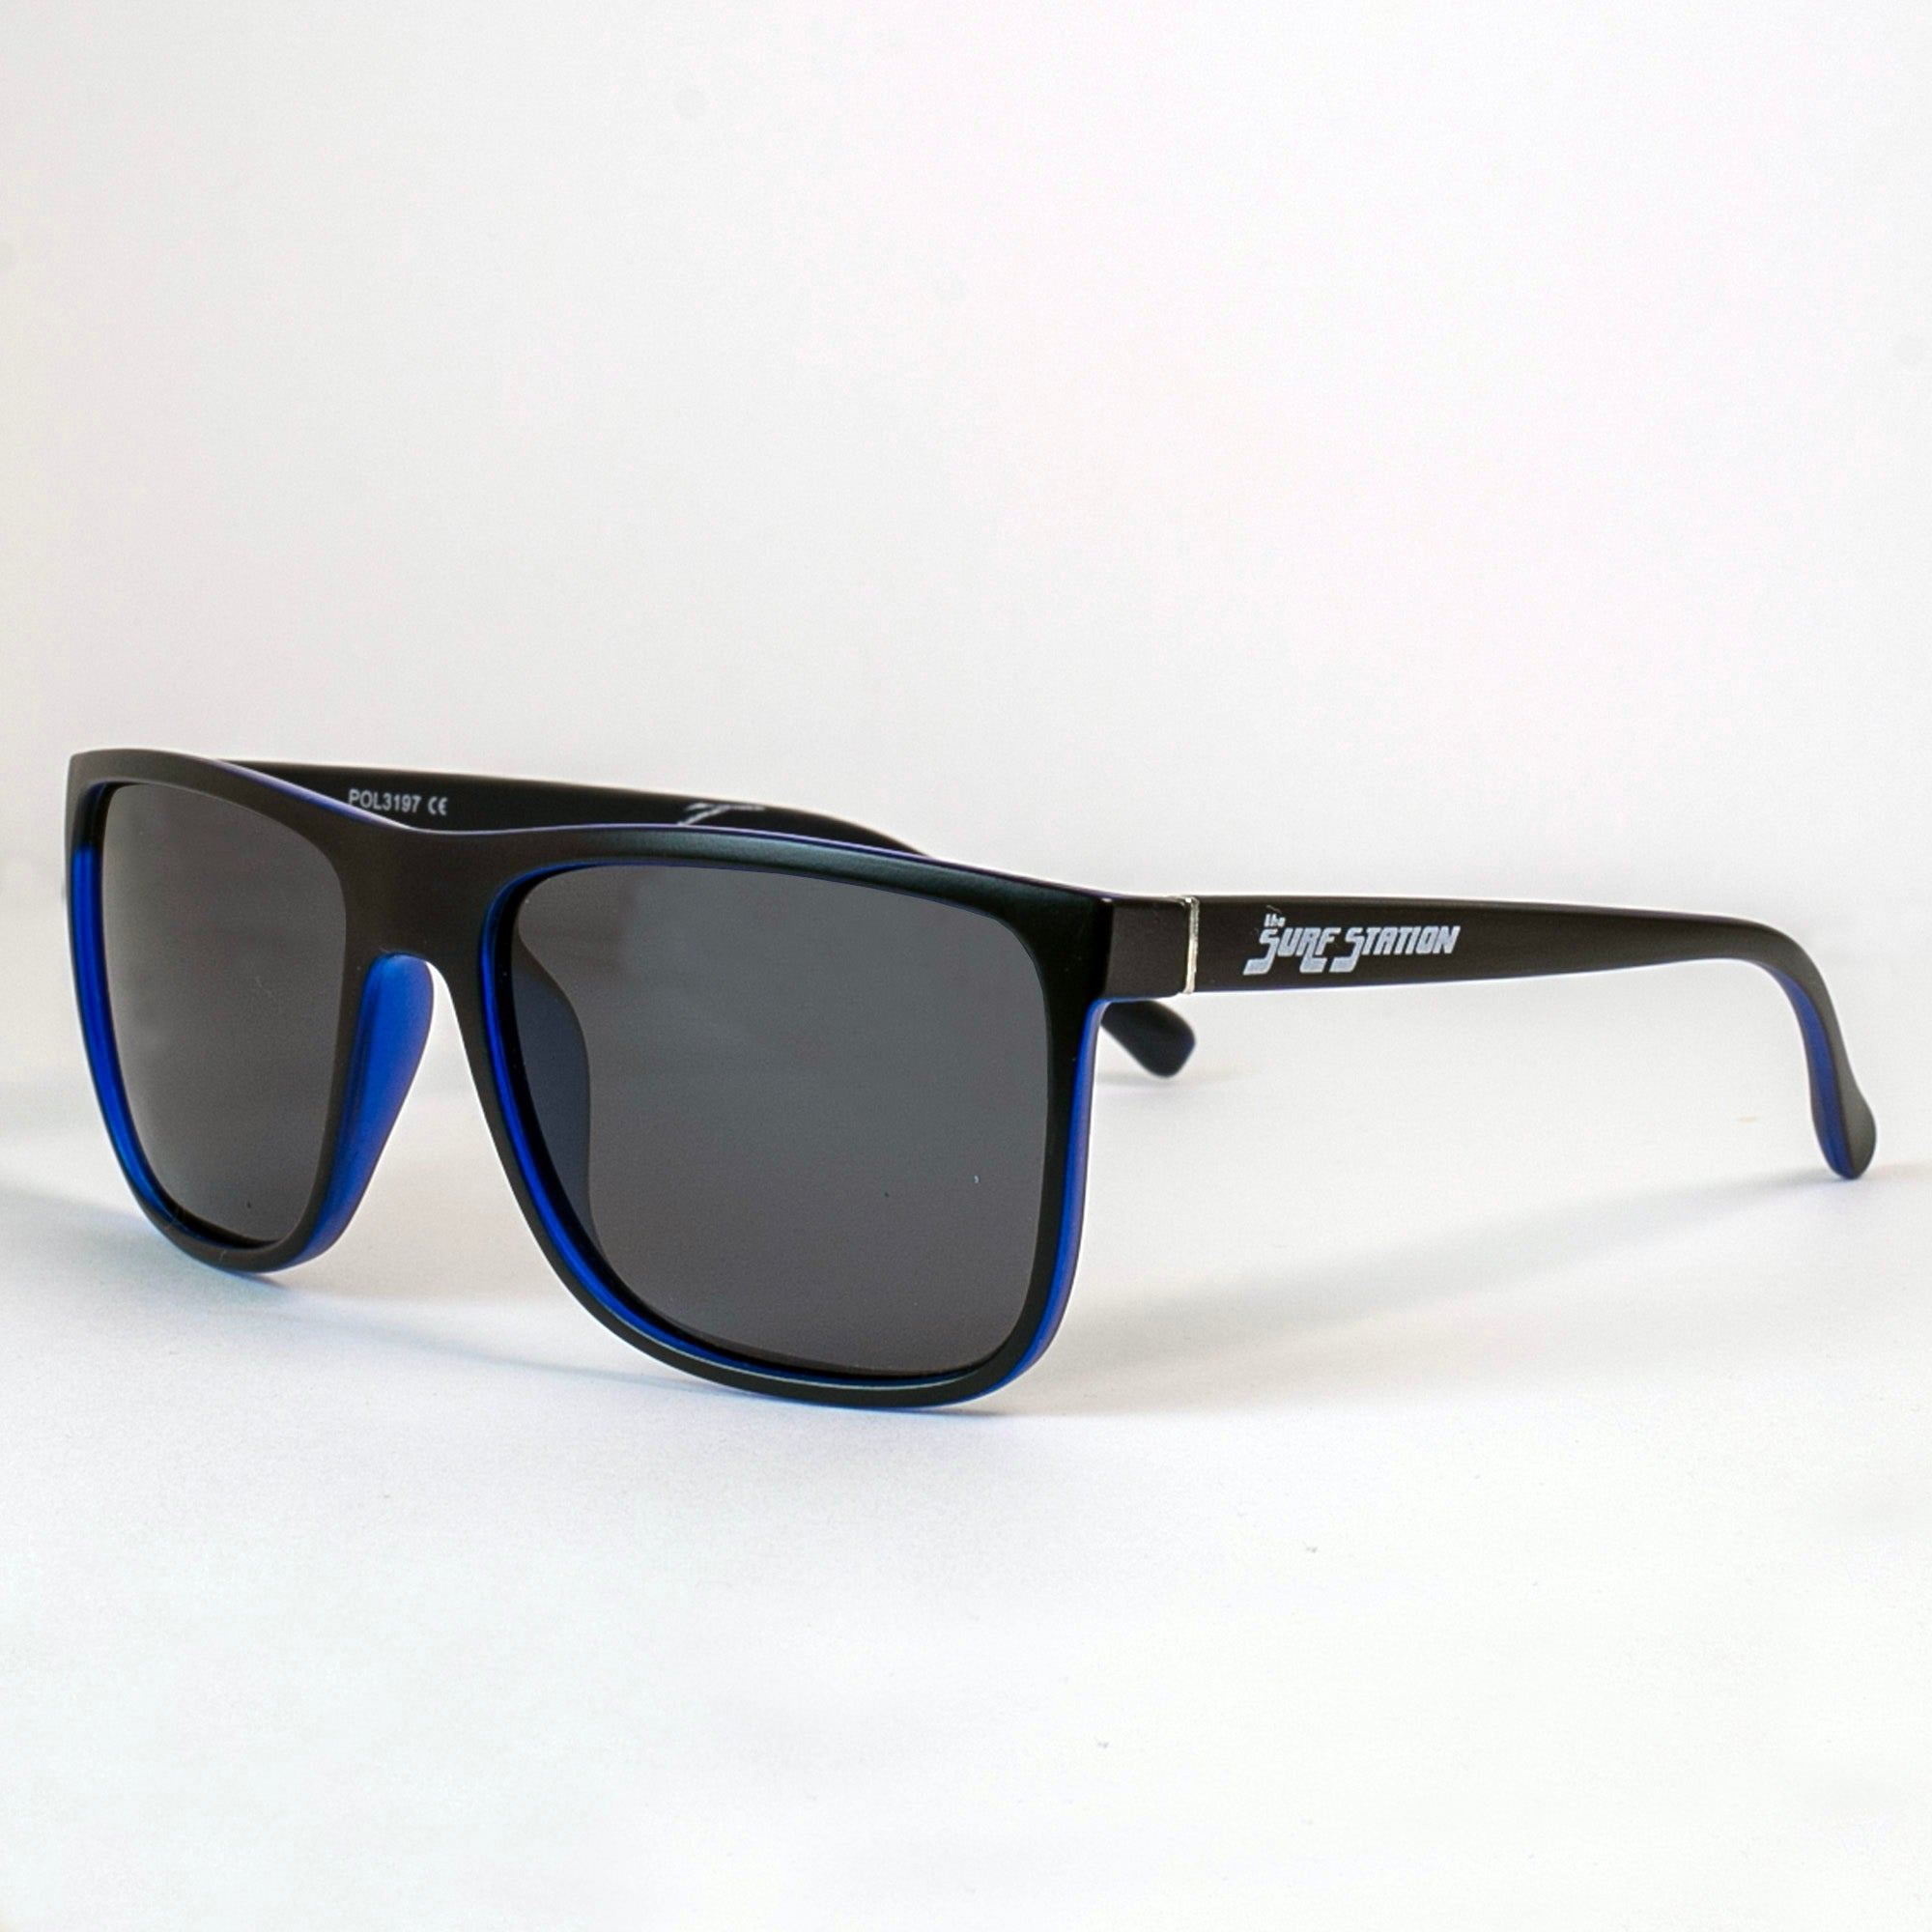 Surf Station Basic Polarized Men's Sunglasses - Blue